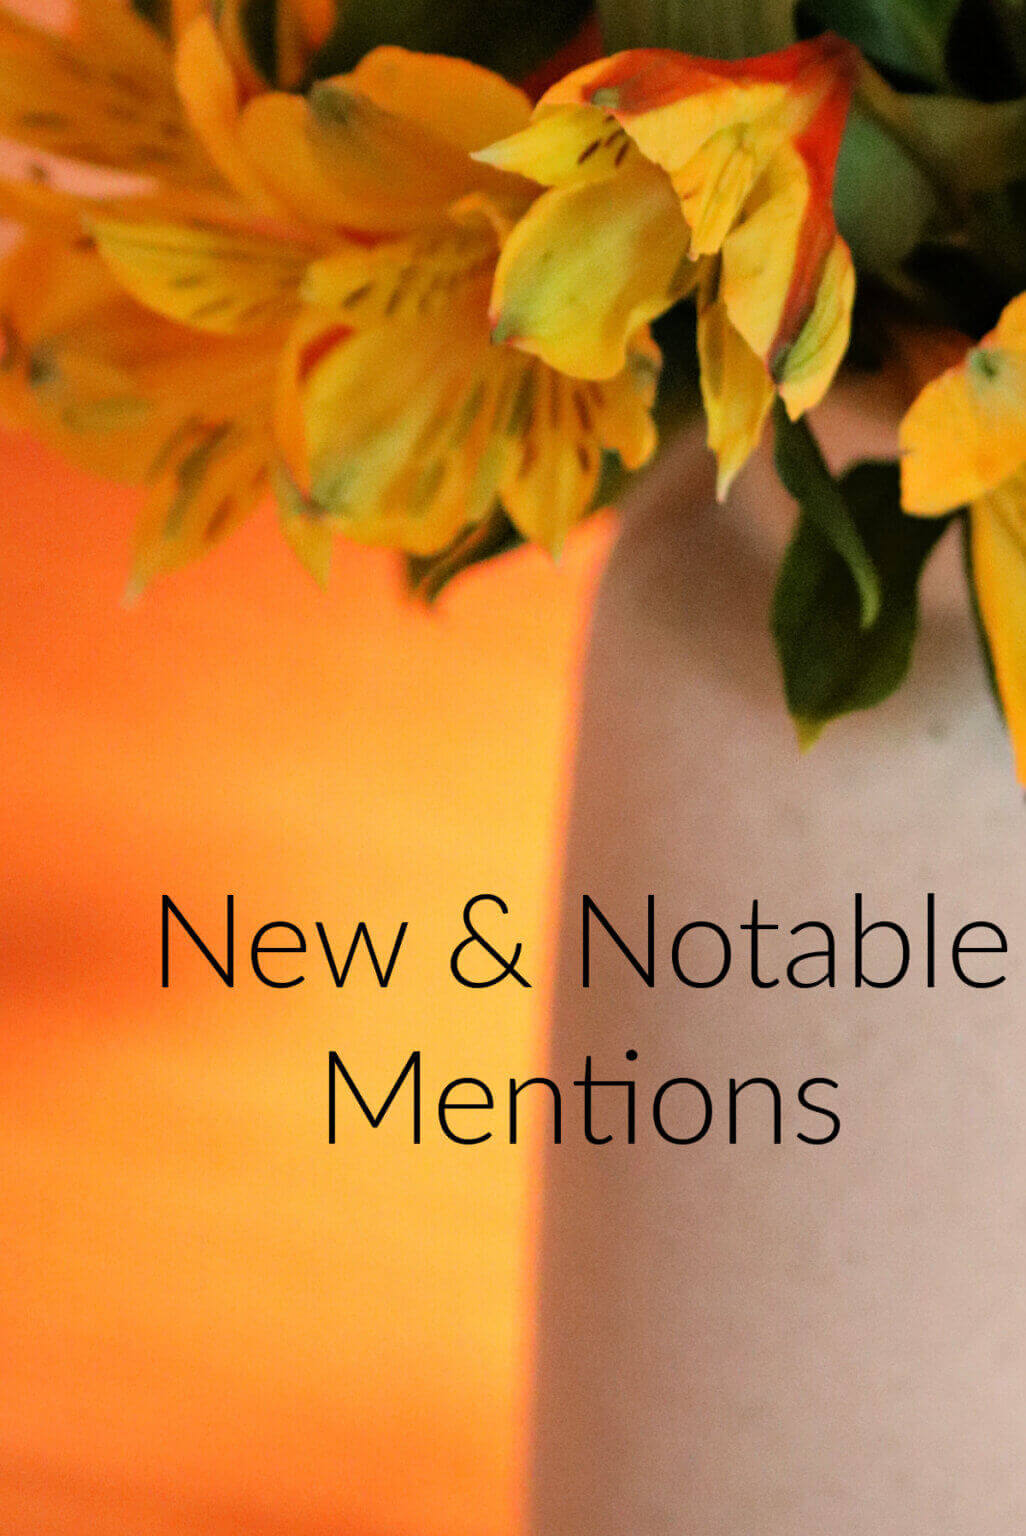 New & Notable Mentions #7